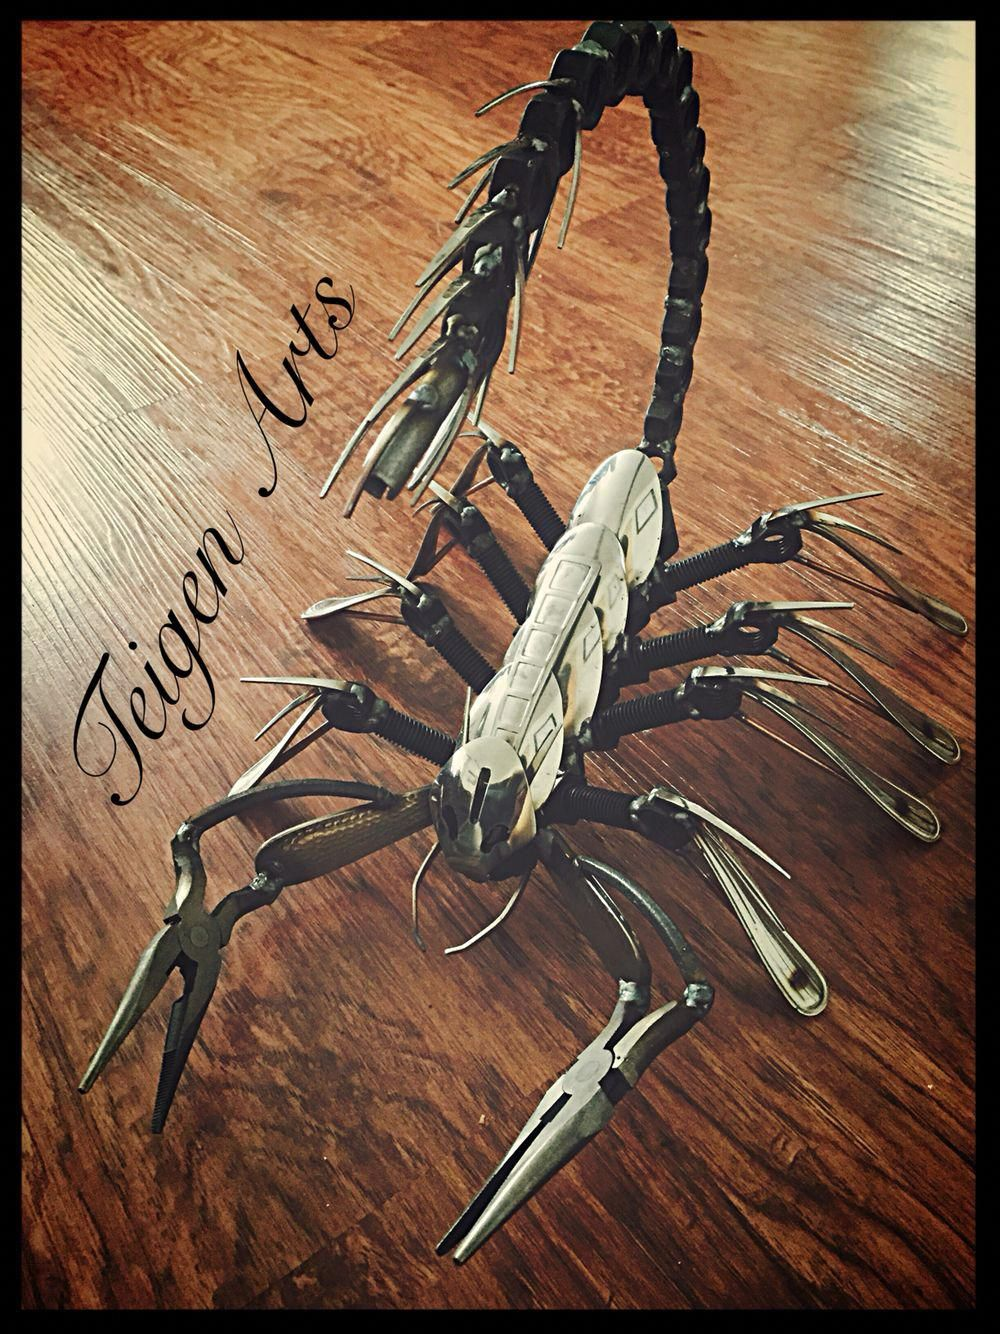 Garage Art Facebook This Is My Scorpion I Built Check Out More Pictures And Metal Art